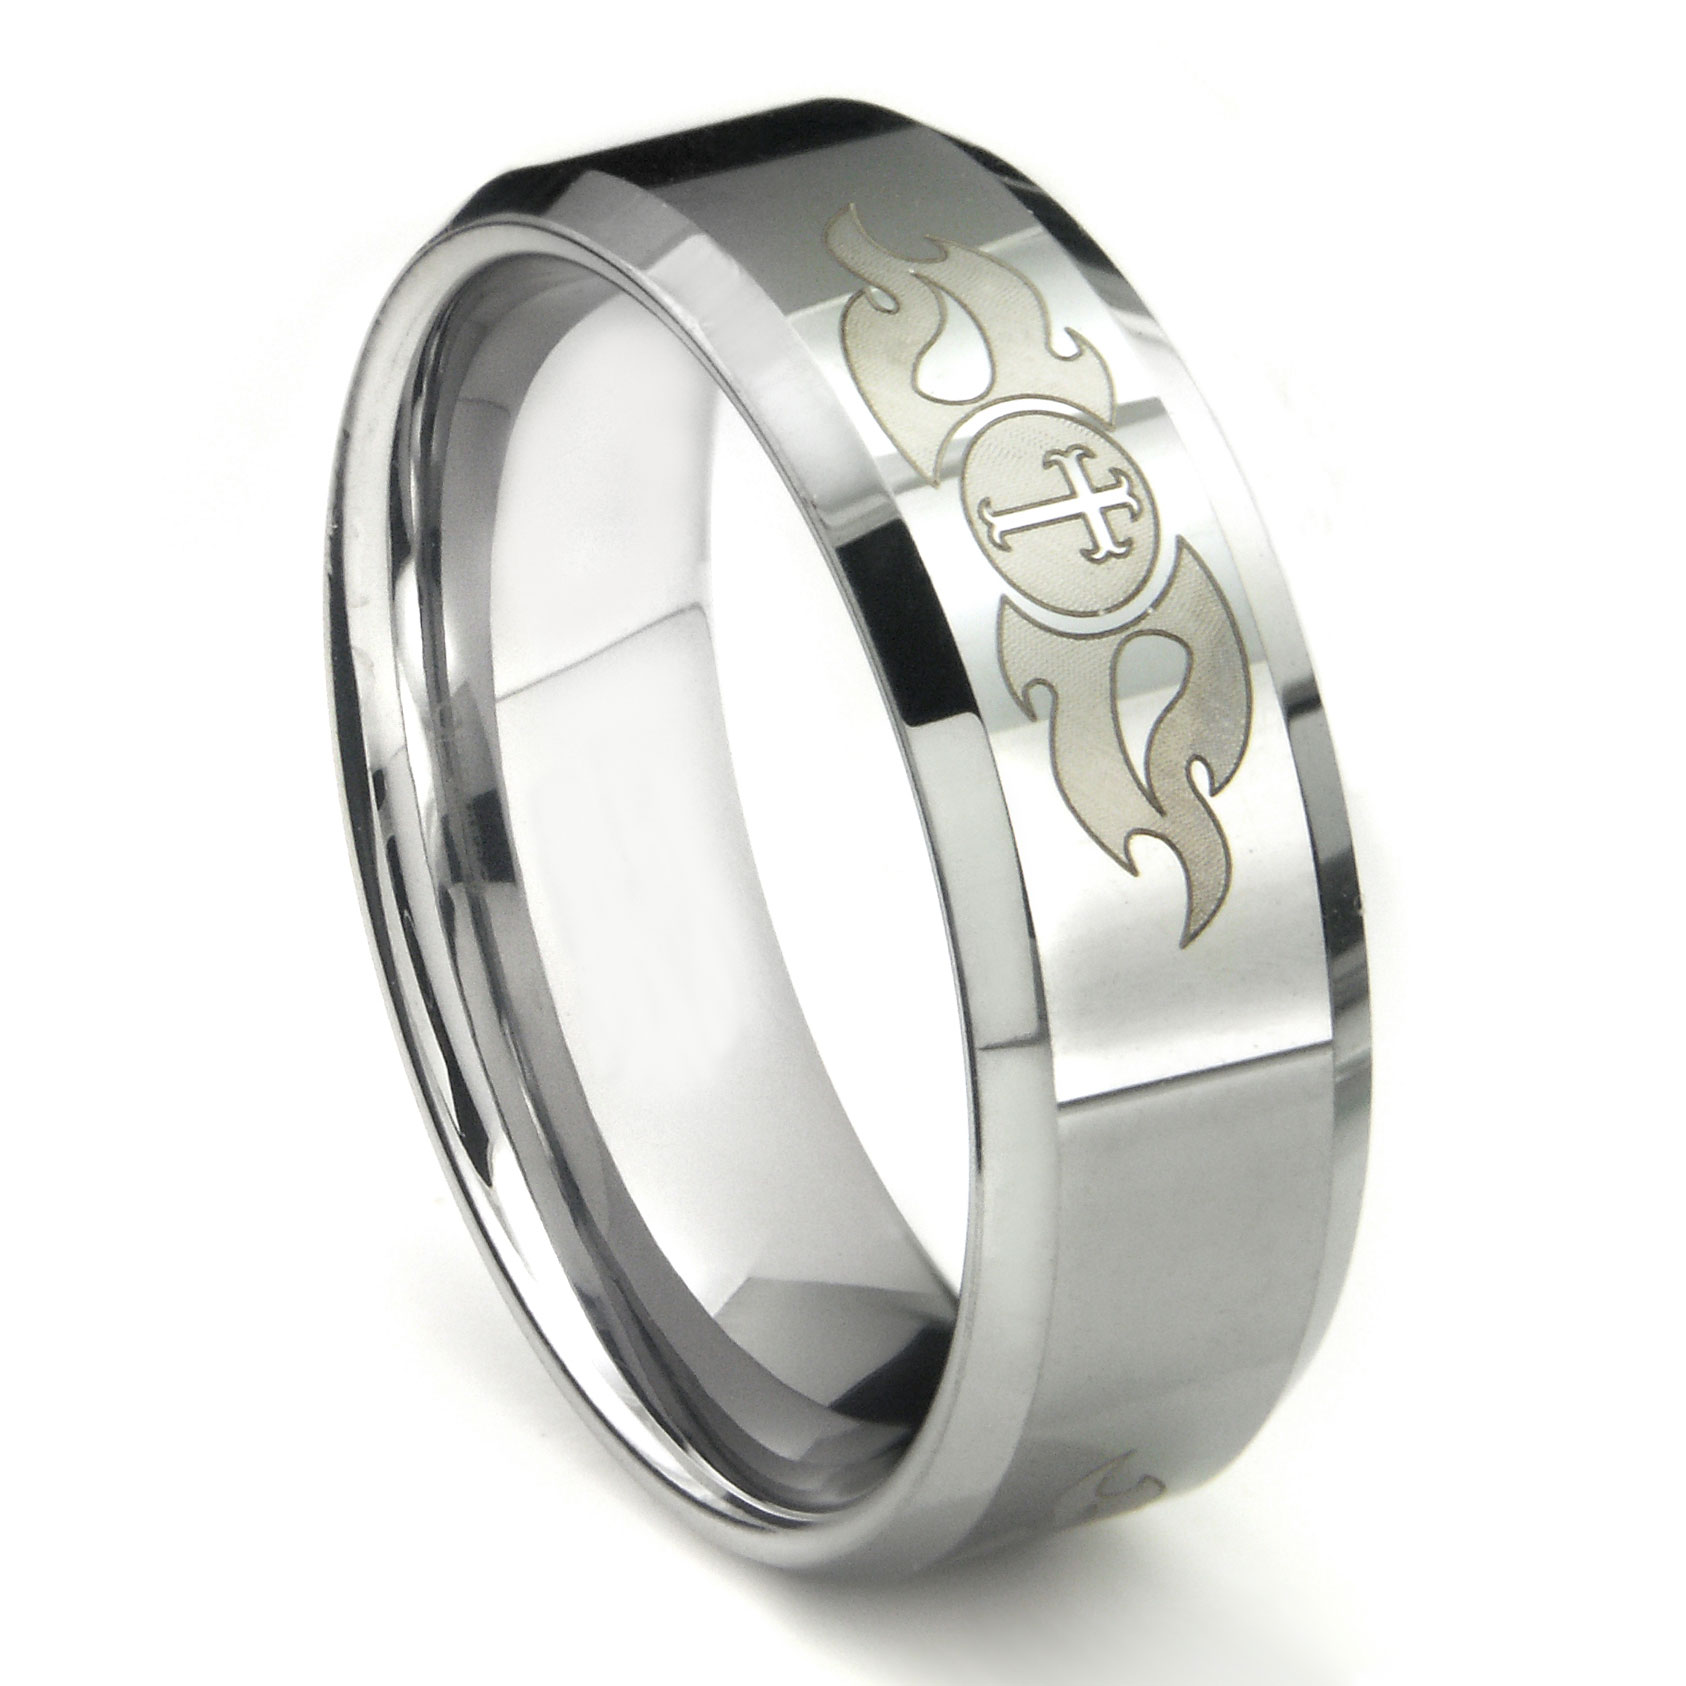 ring aktdesc rings men plated tungsten celtic carbide band wedding from gold product jewelry engagement dragon rose style mens s infinity